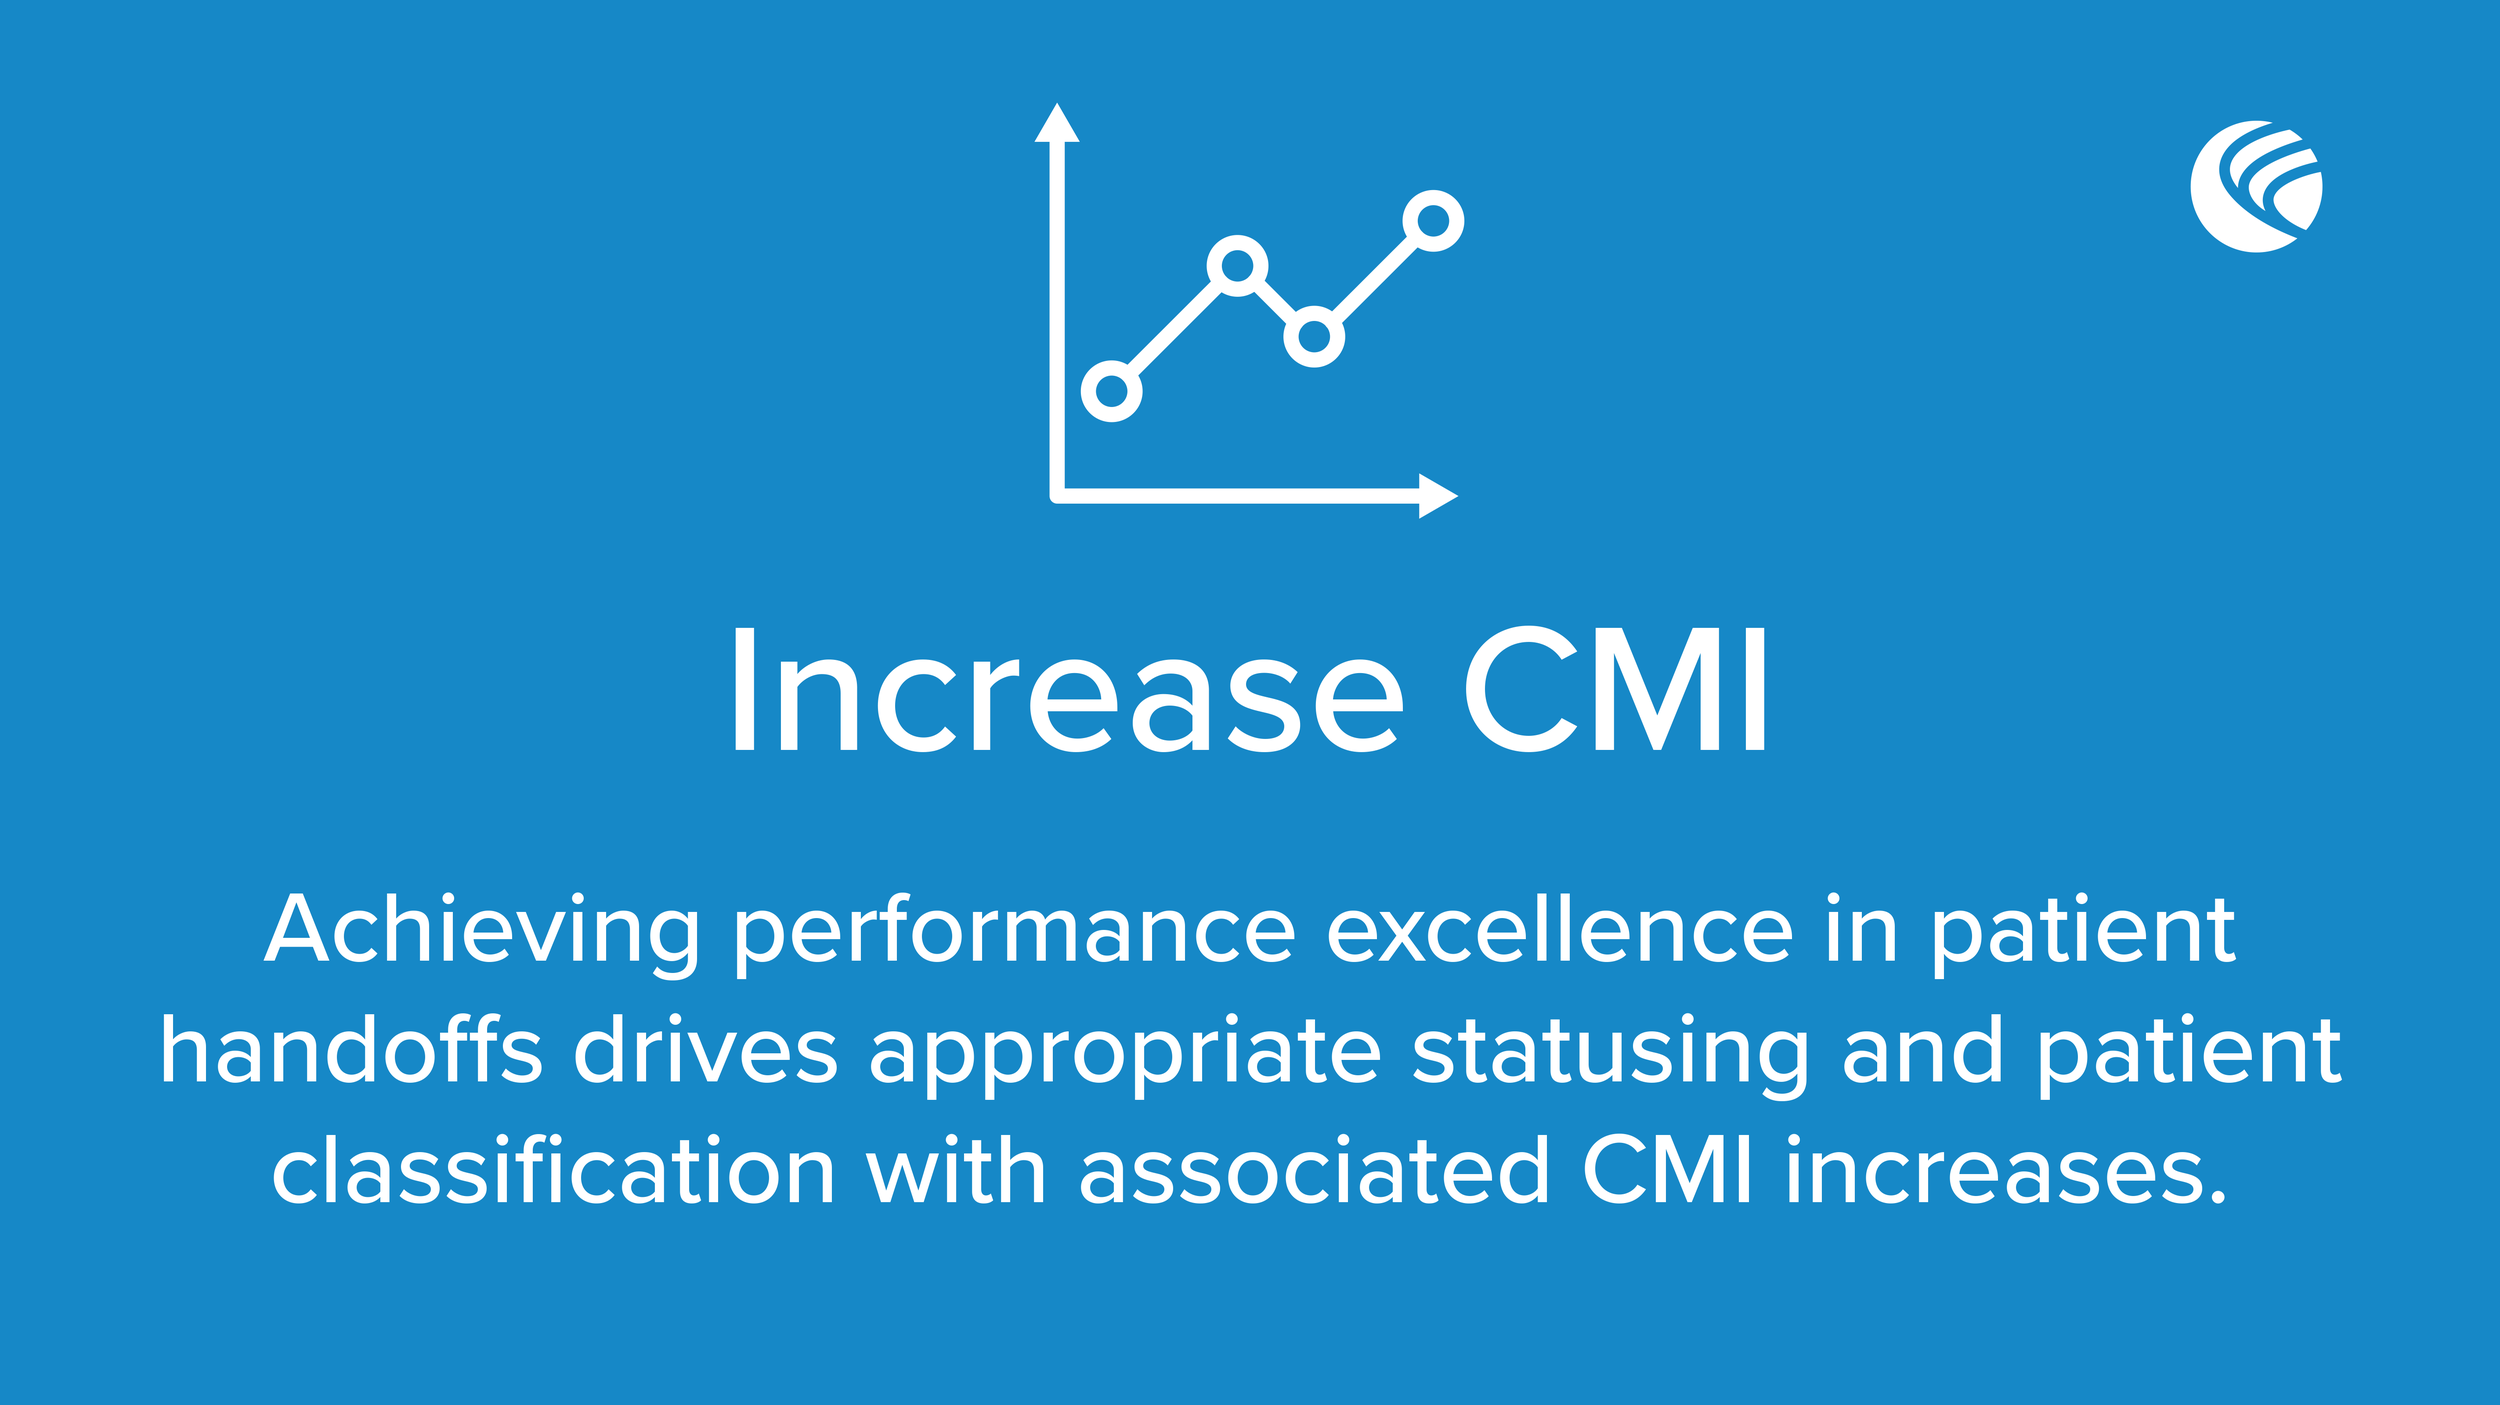 Increase CMI